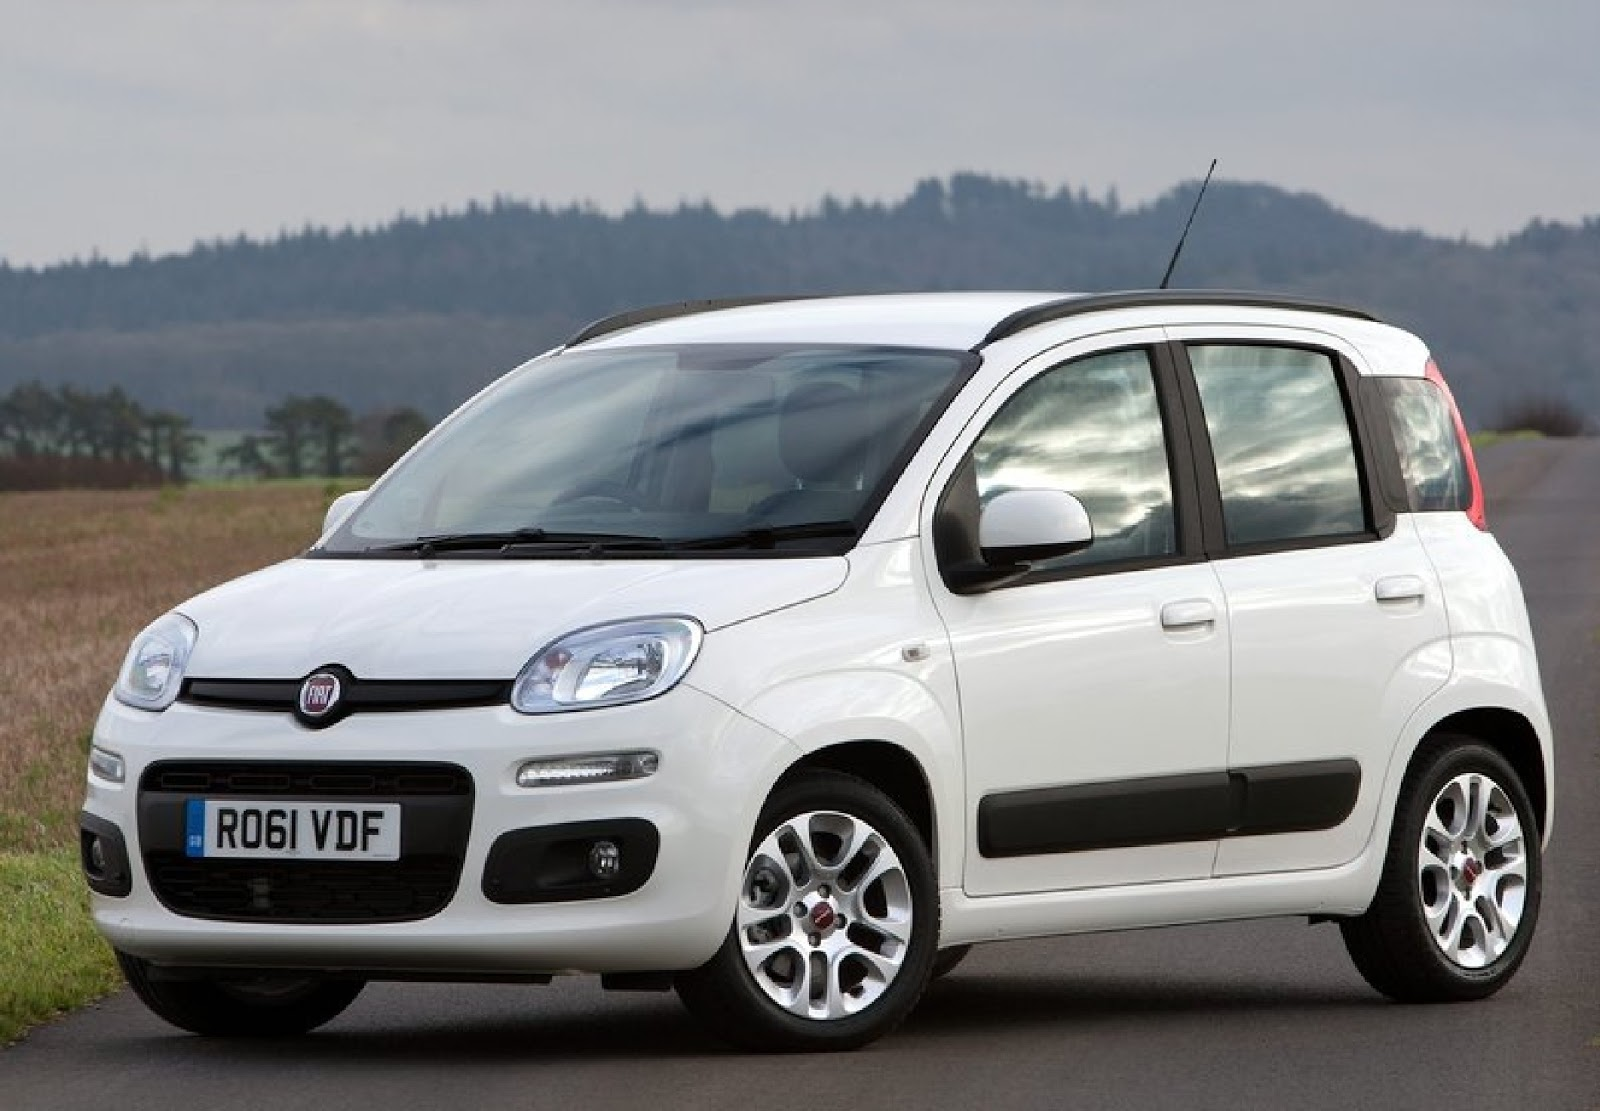 2013 fiat panda uk version auto cars concept. Black Bedroom Furniture Sets. Home Design Ideas